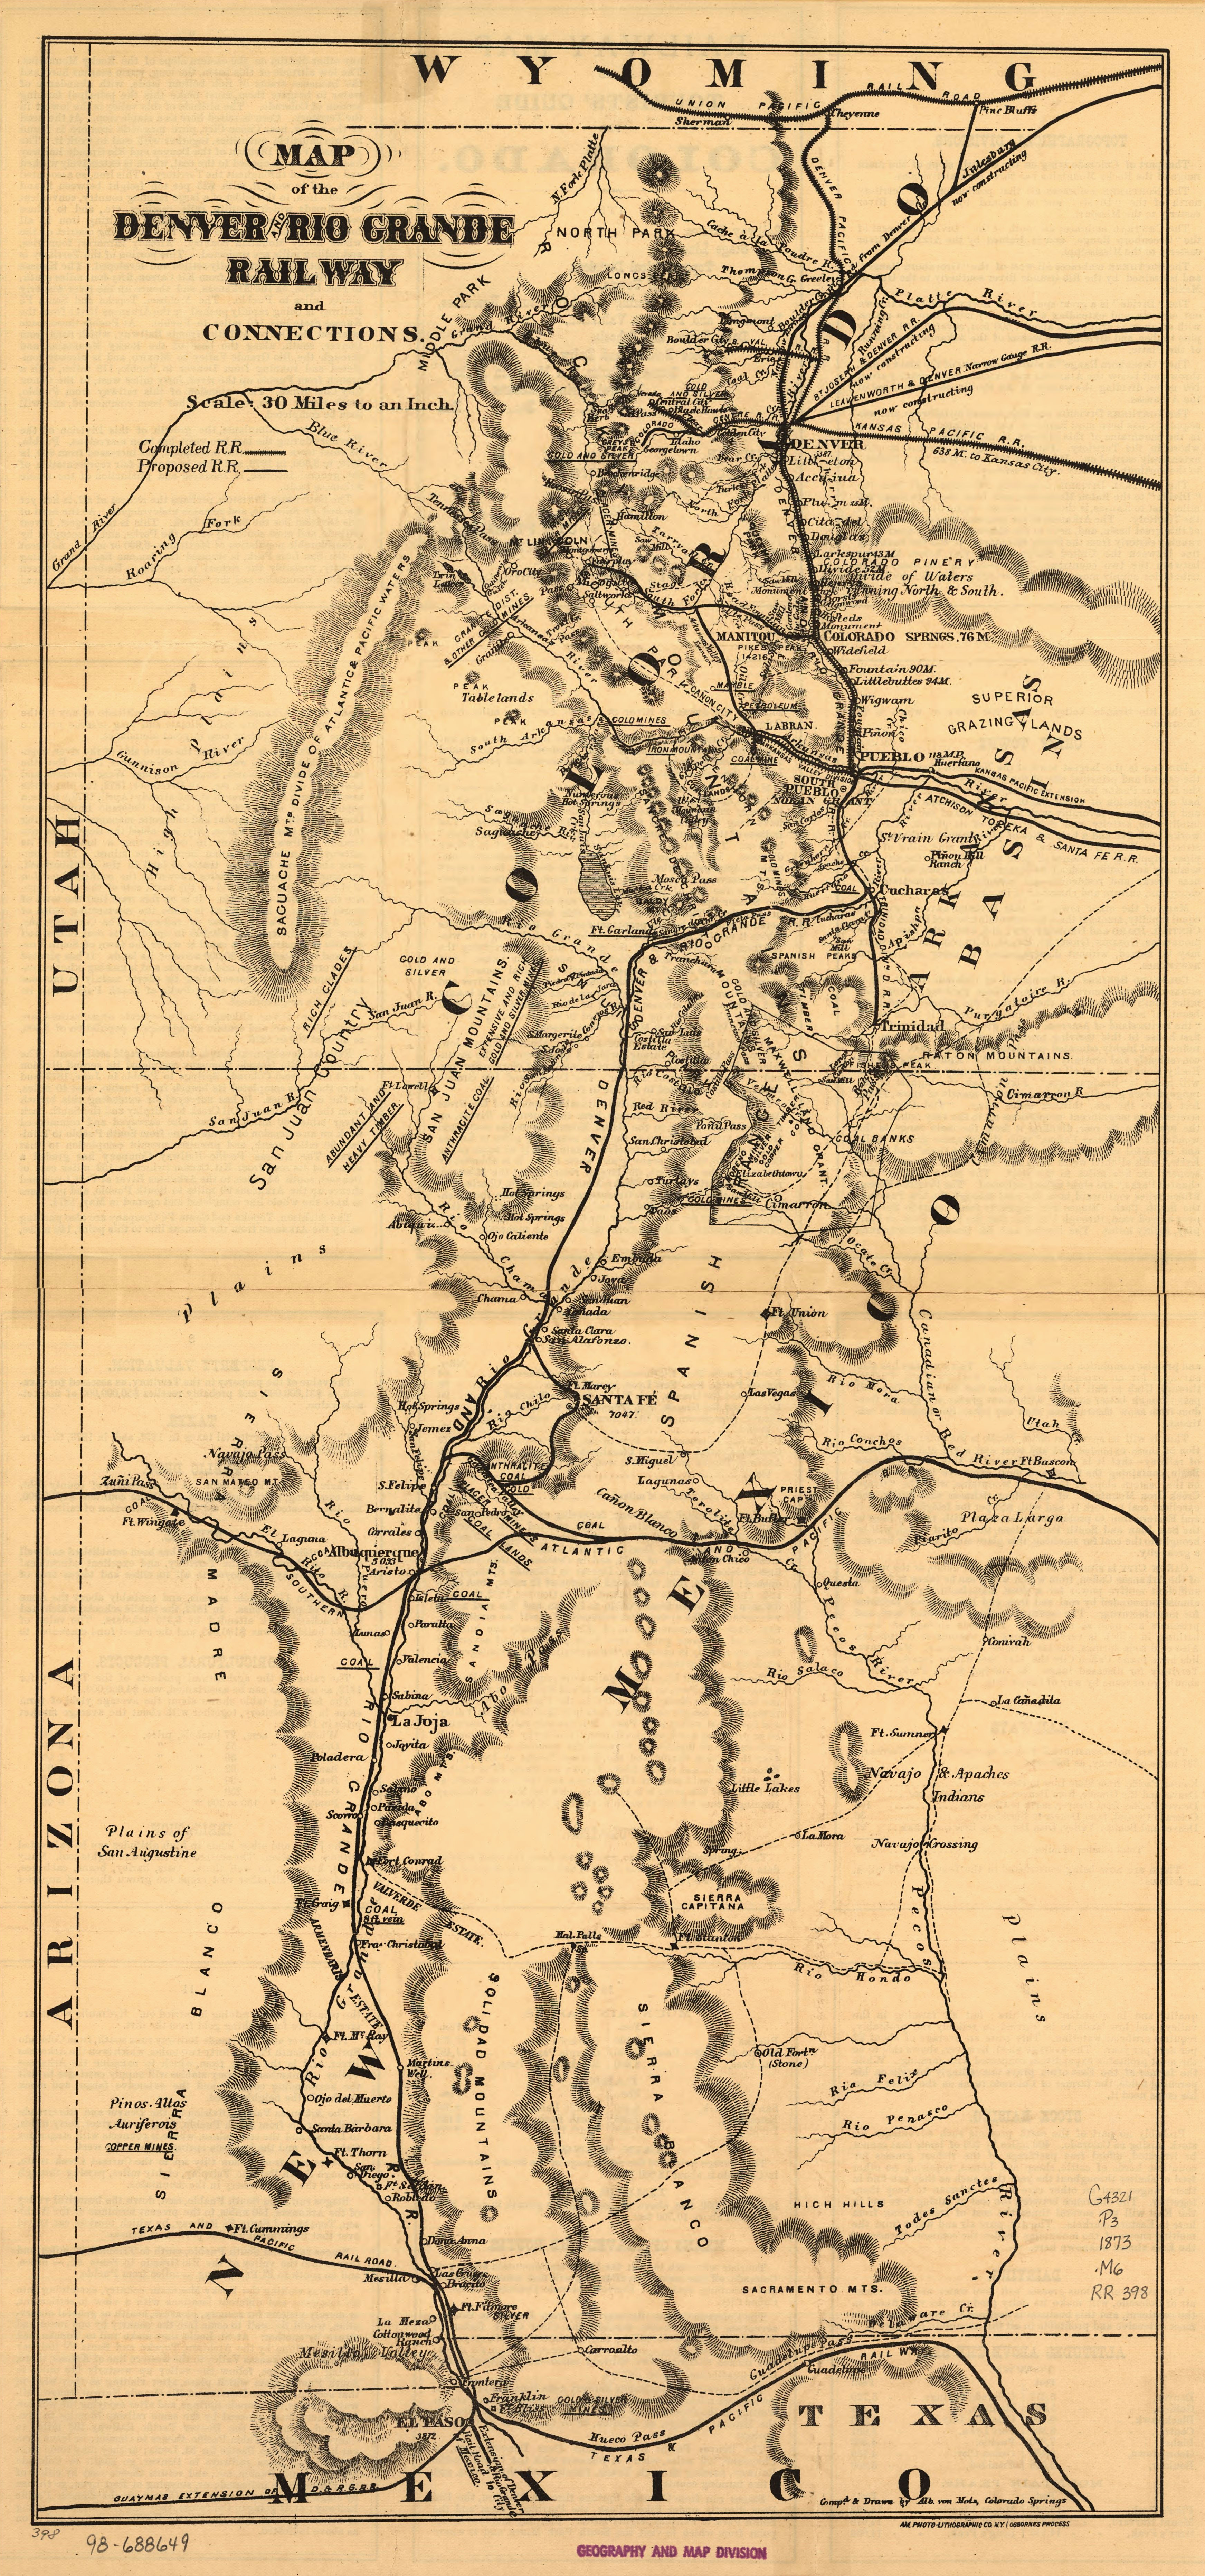 file map of the denver and rio grande railway and connections loc